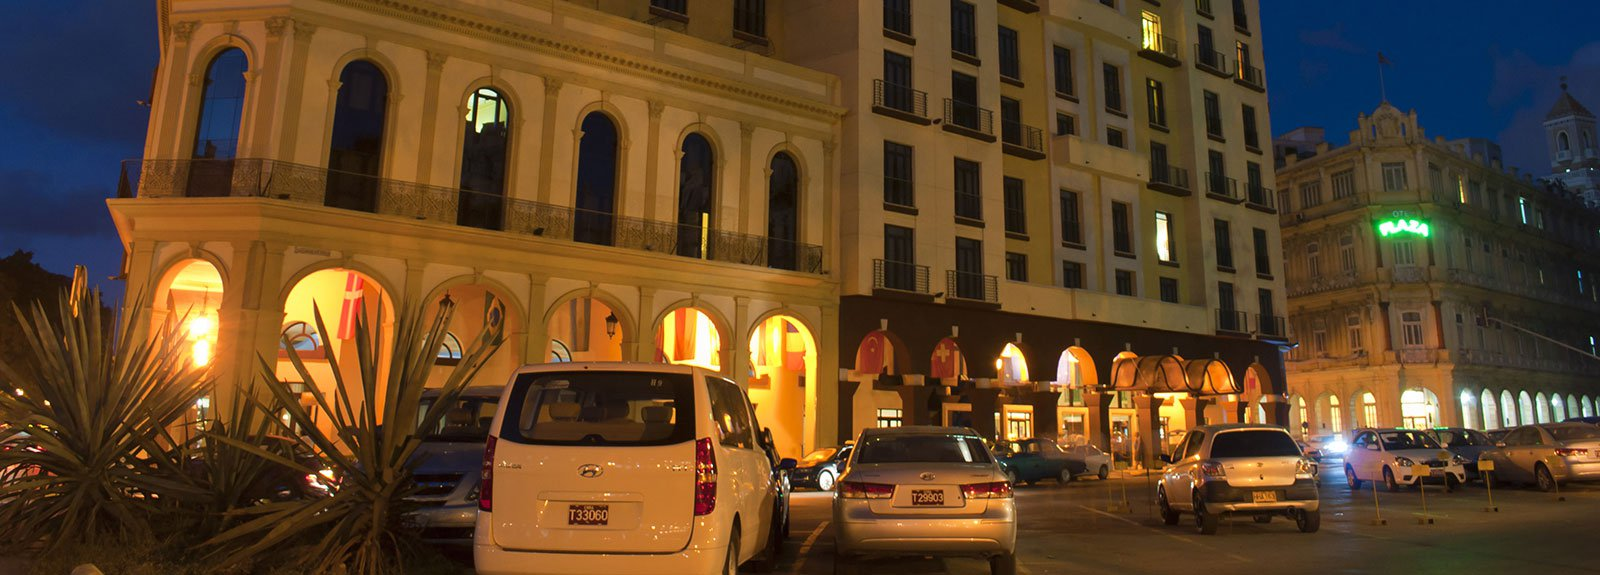 Hotel Parque Central in Old Havana